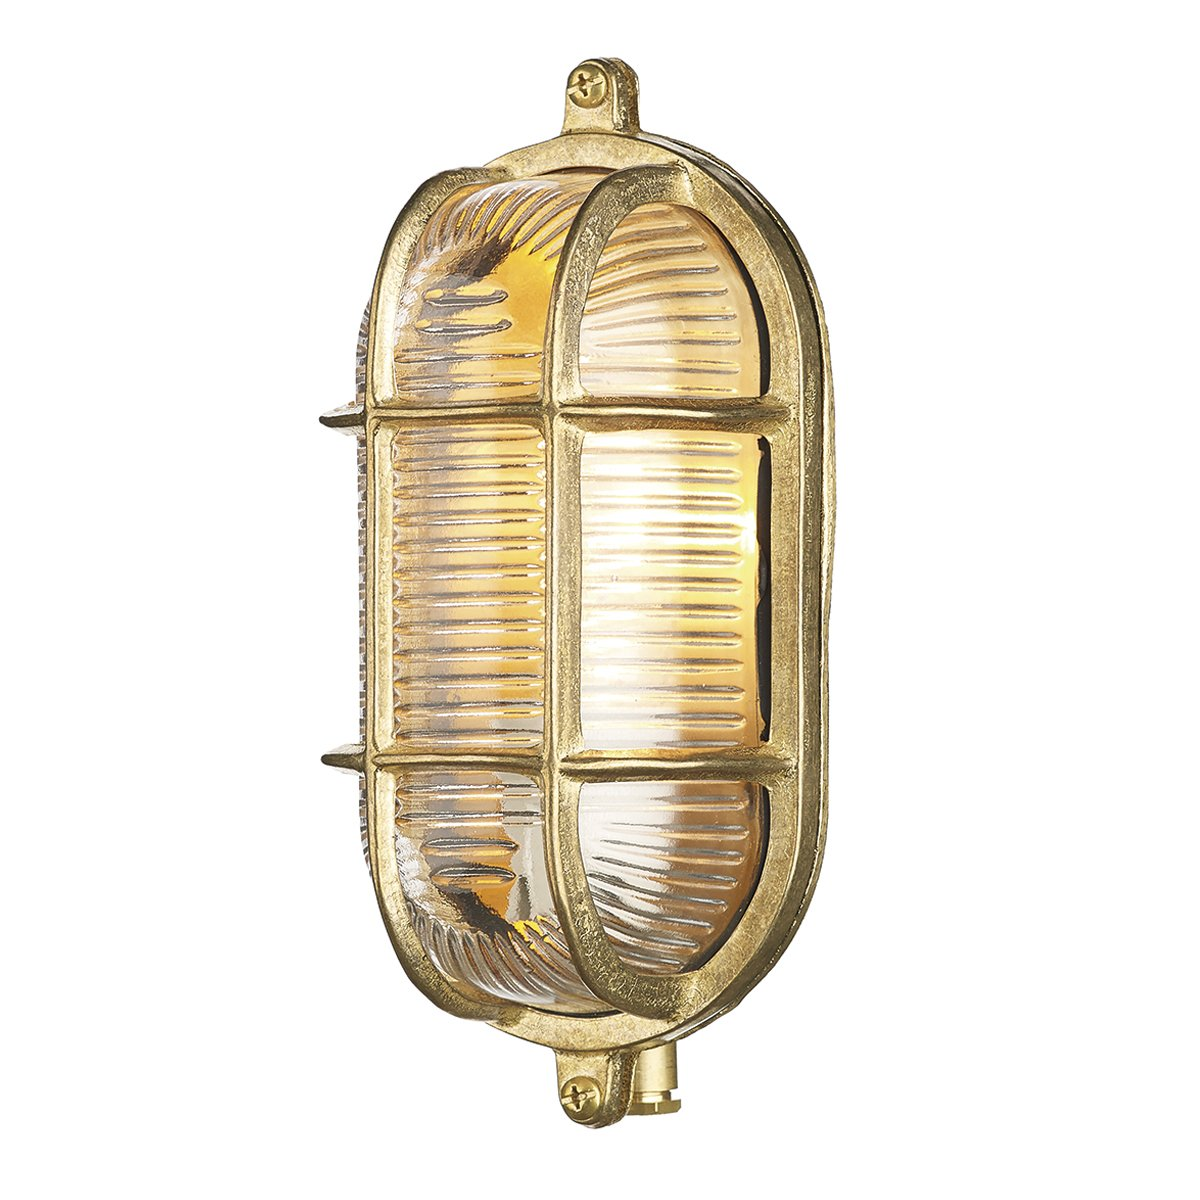 David Hunt Lighting ADM5238 Admiral 1 Light Small Oval Wall Light Nickel